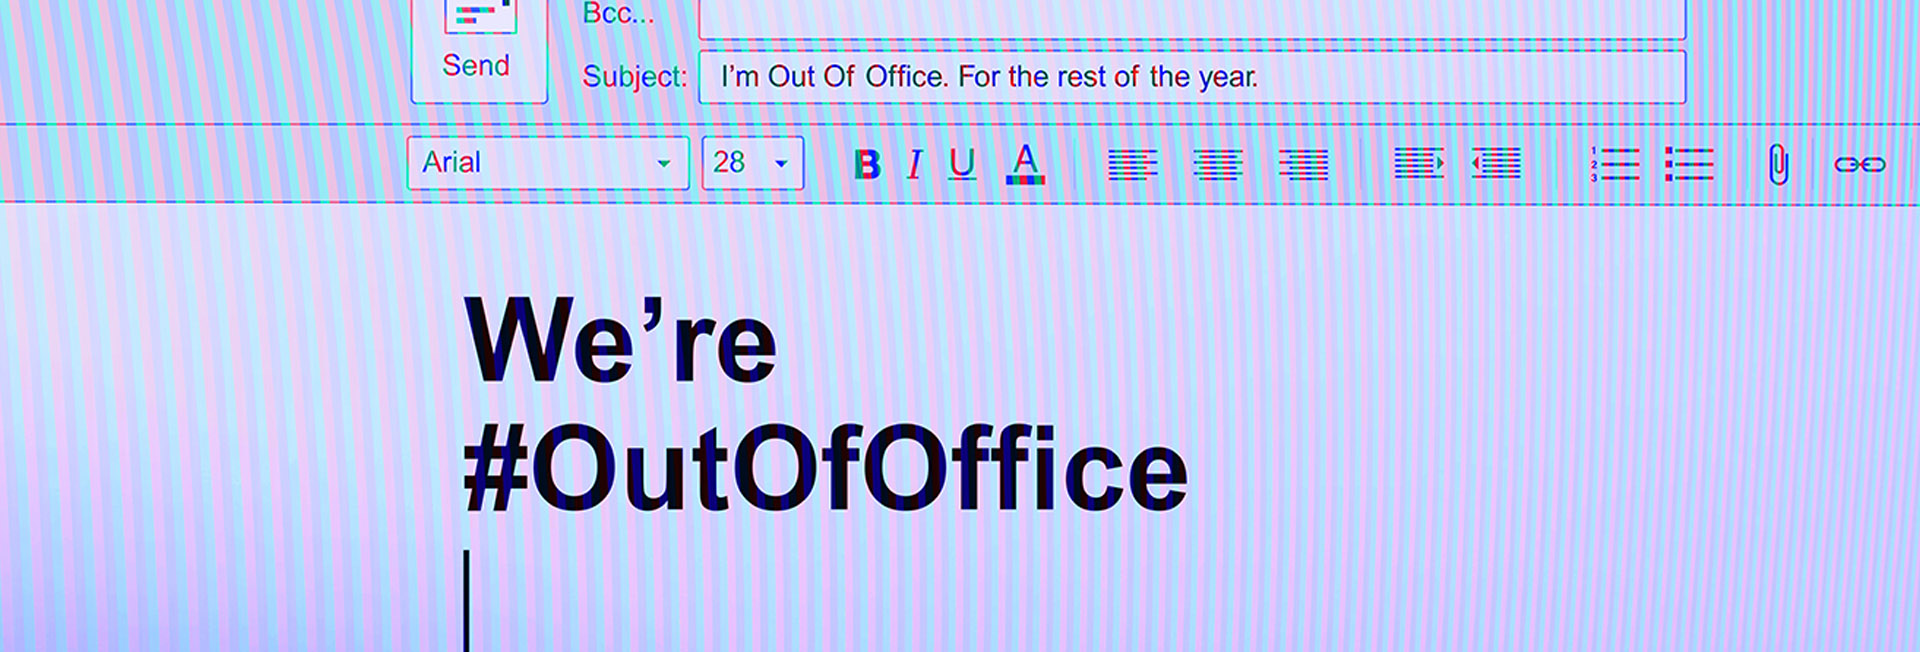 #OutOfOffice